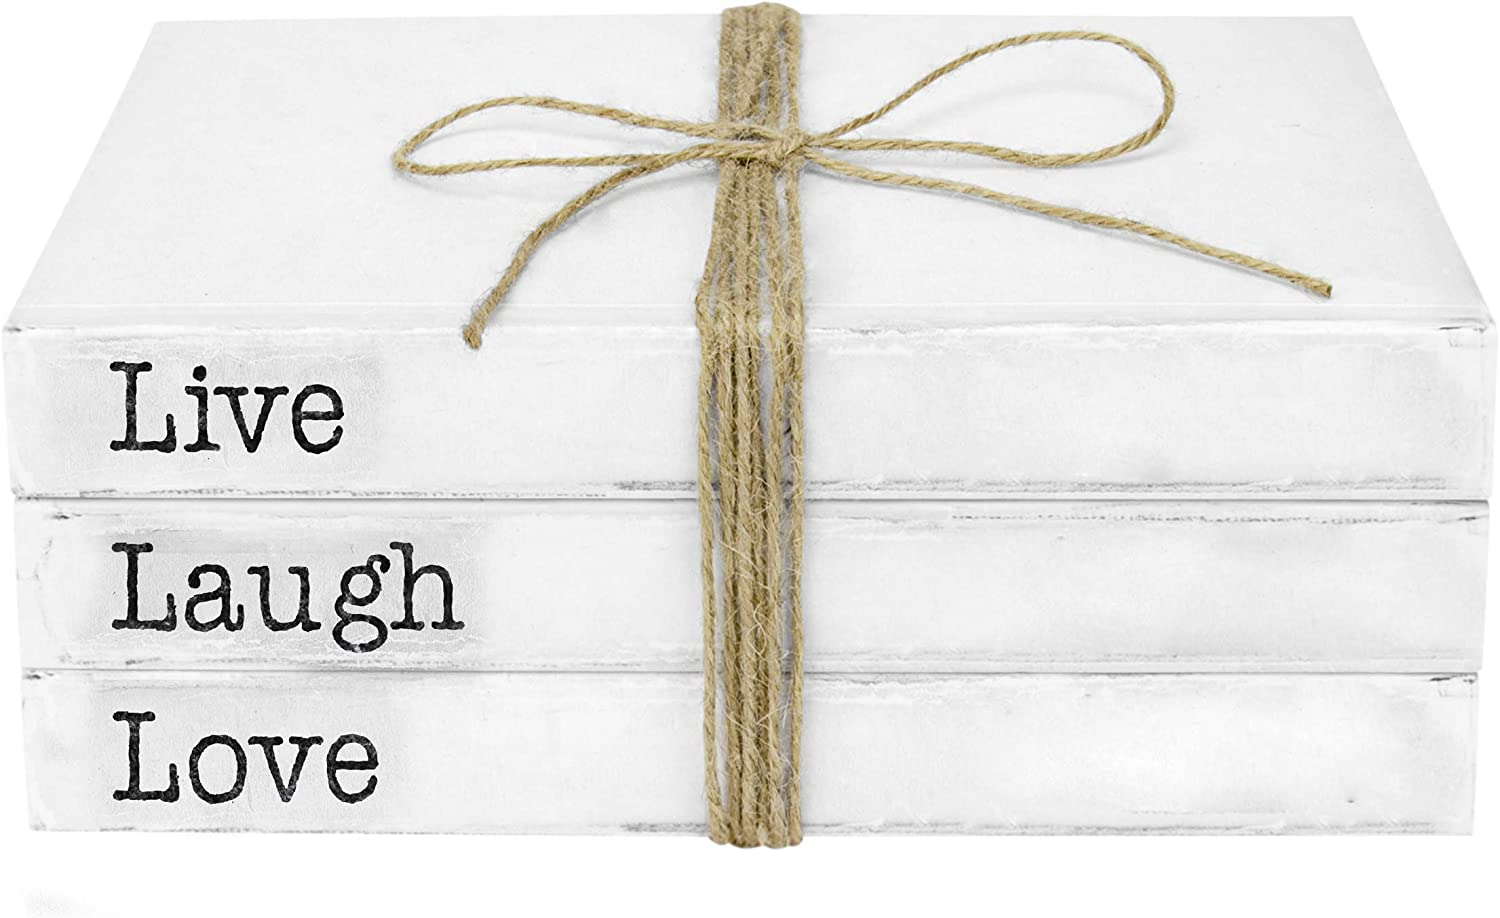 TenXVI Designs Decorative White Books, Set of 3 - Live Laugh Love Stacked Books - Rustic Farmhouse Accent Decor for a Living Room Coffee Table, Entryway Shelf, End Table, Mantel & Bedroom Night Stand